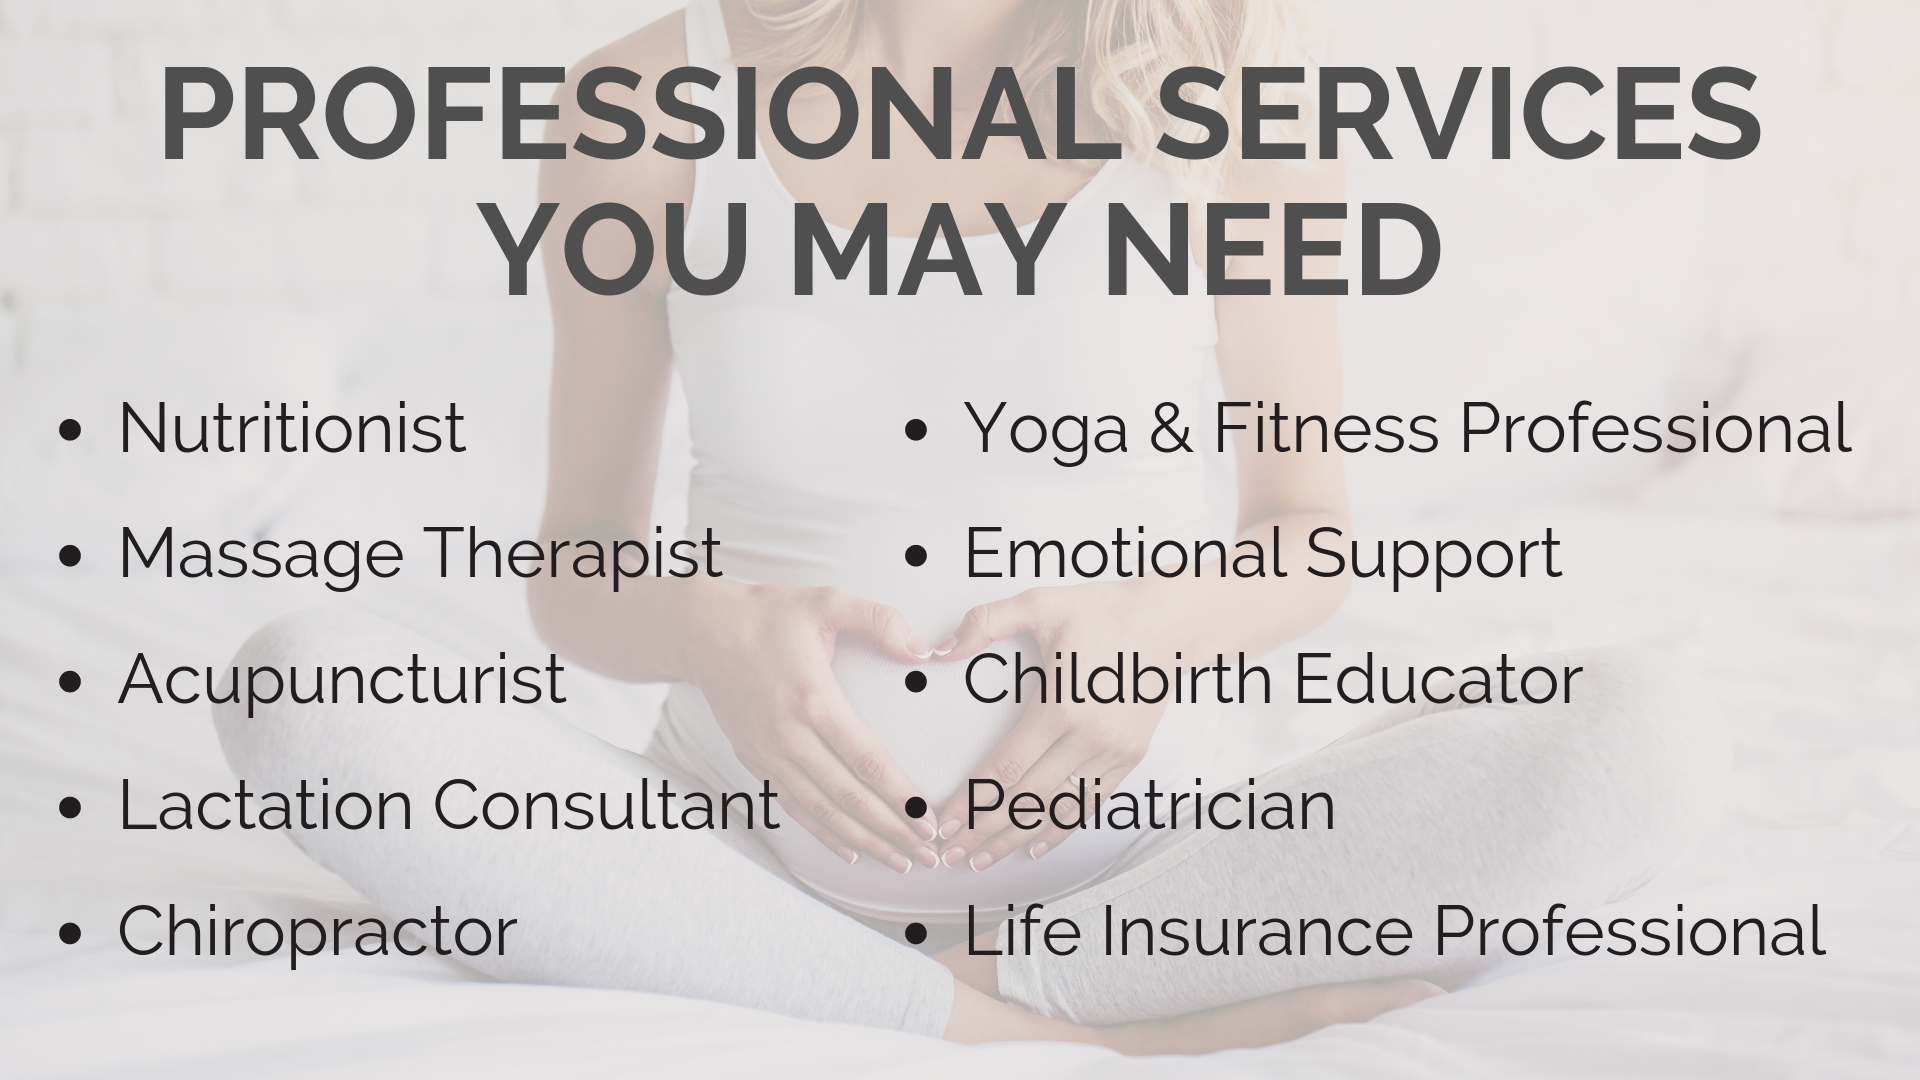 Professional Services You May Need